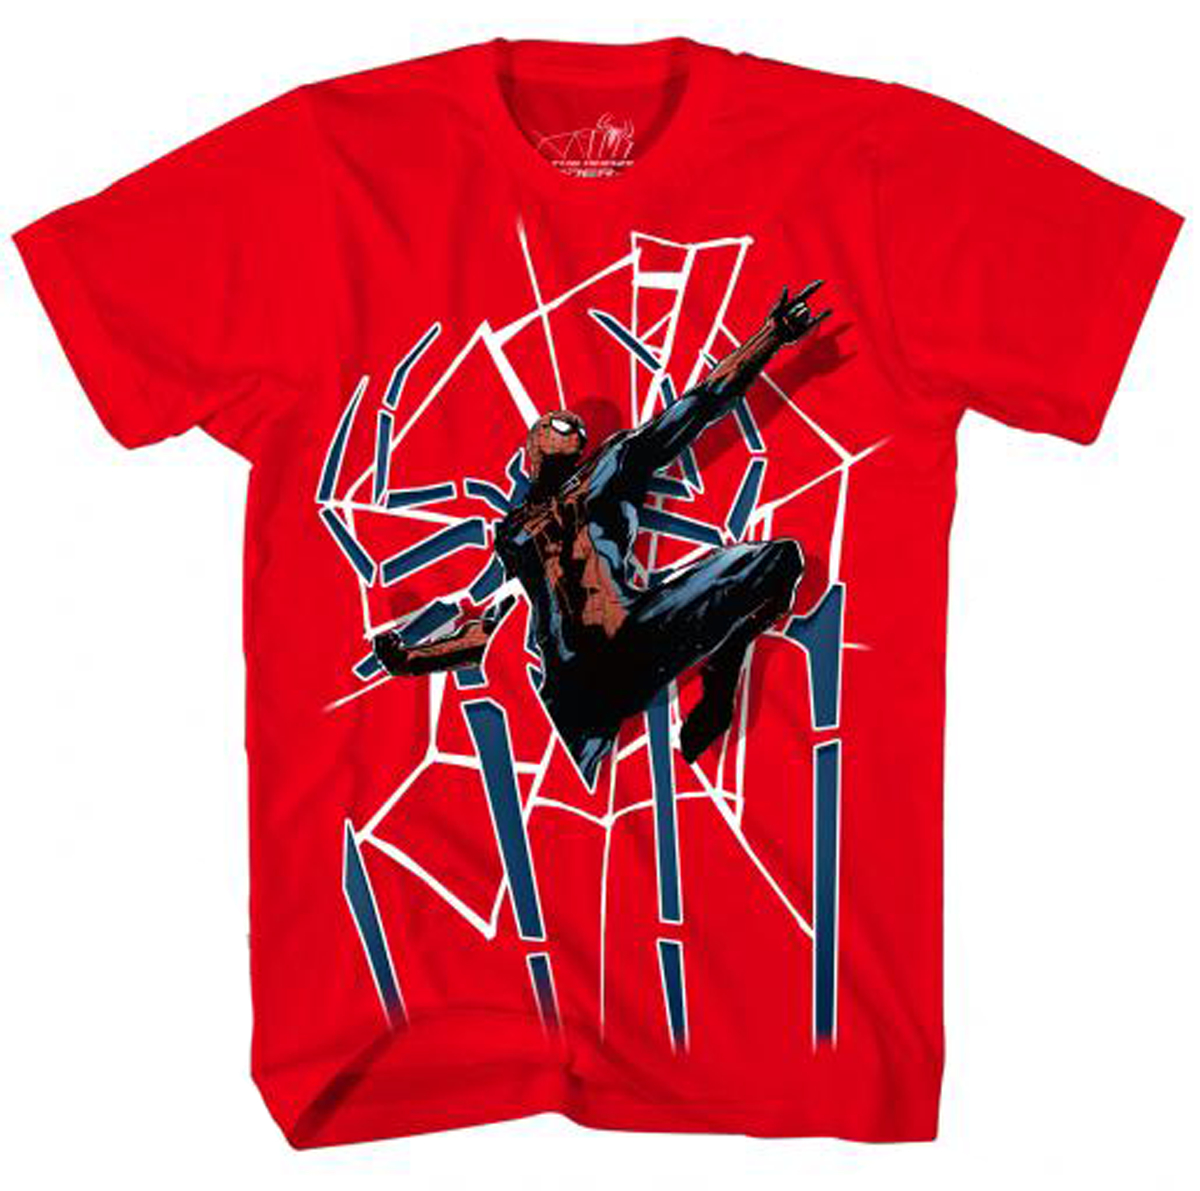 AMAZING SPIDER-MAN SPIDER DOOR RED T/S XL